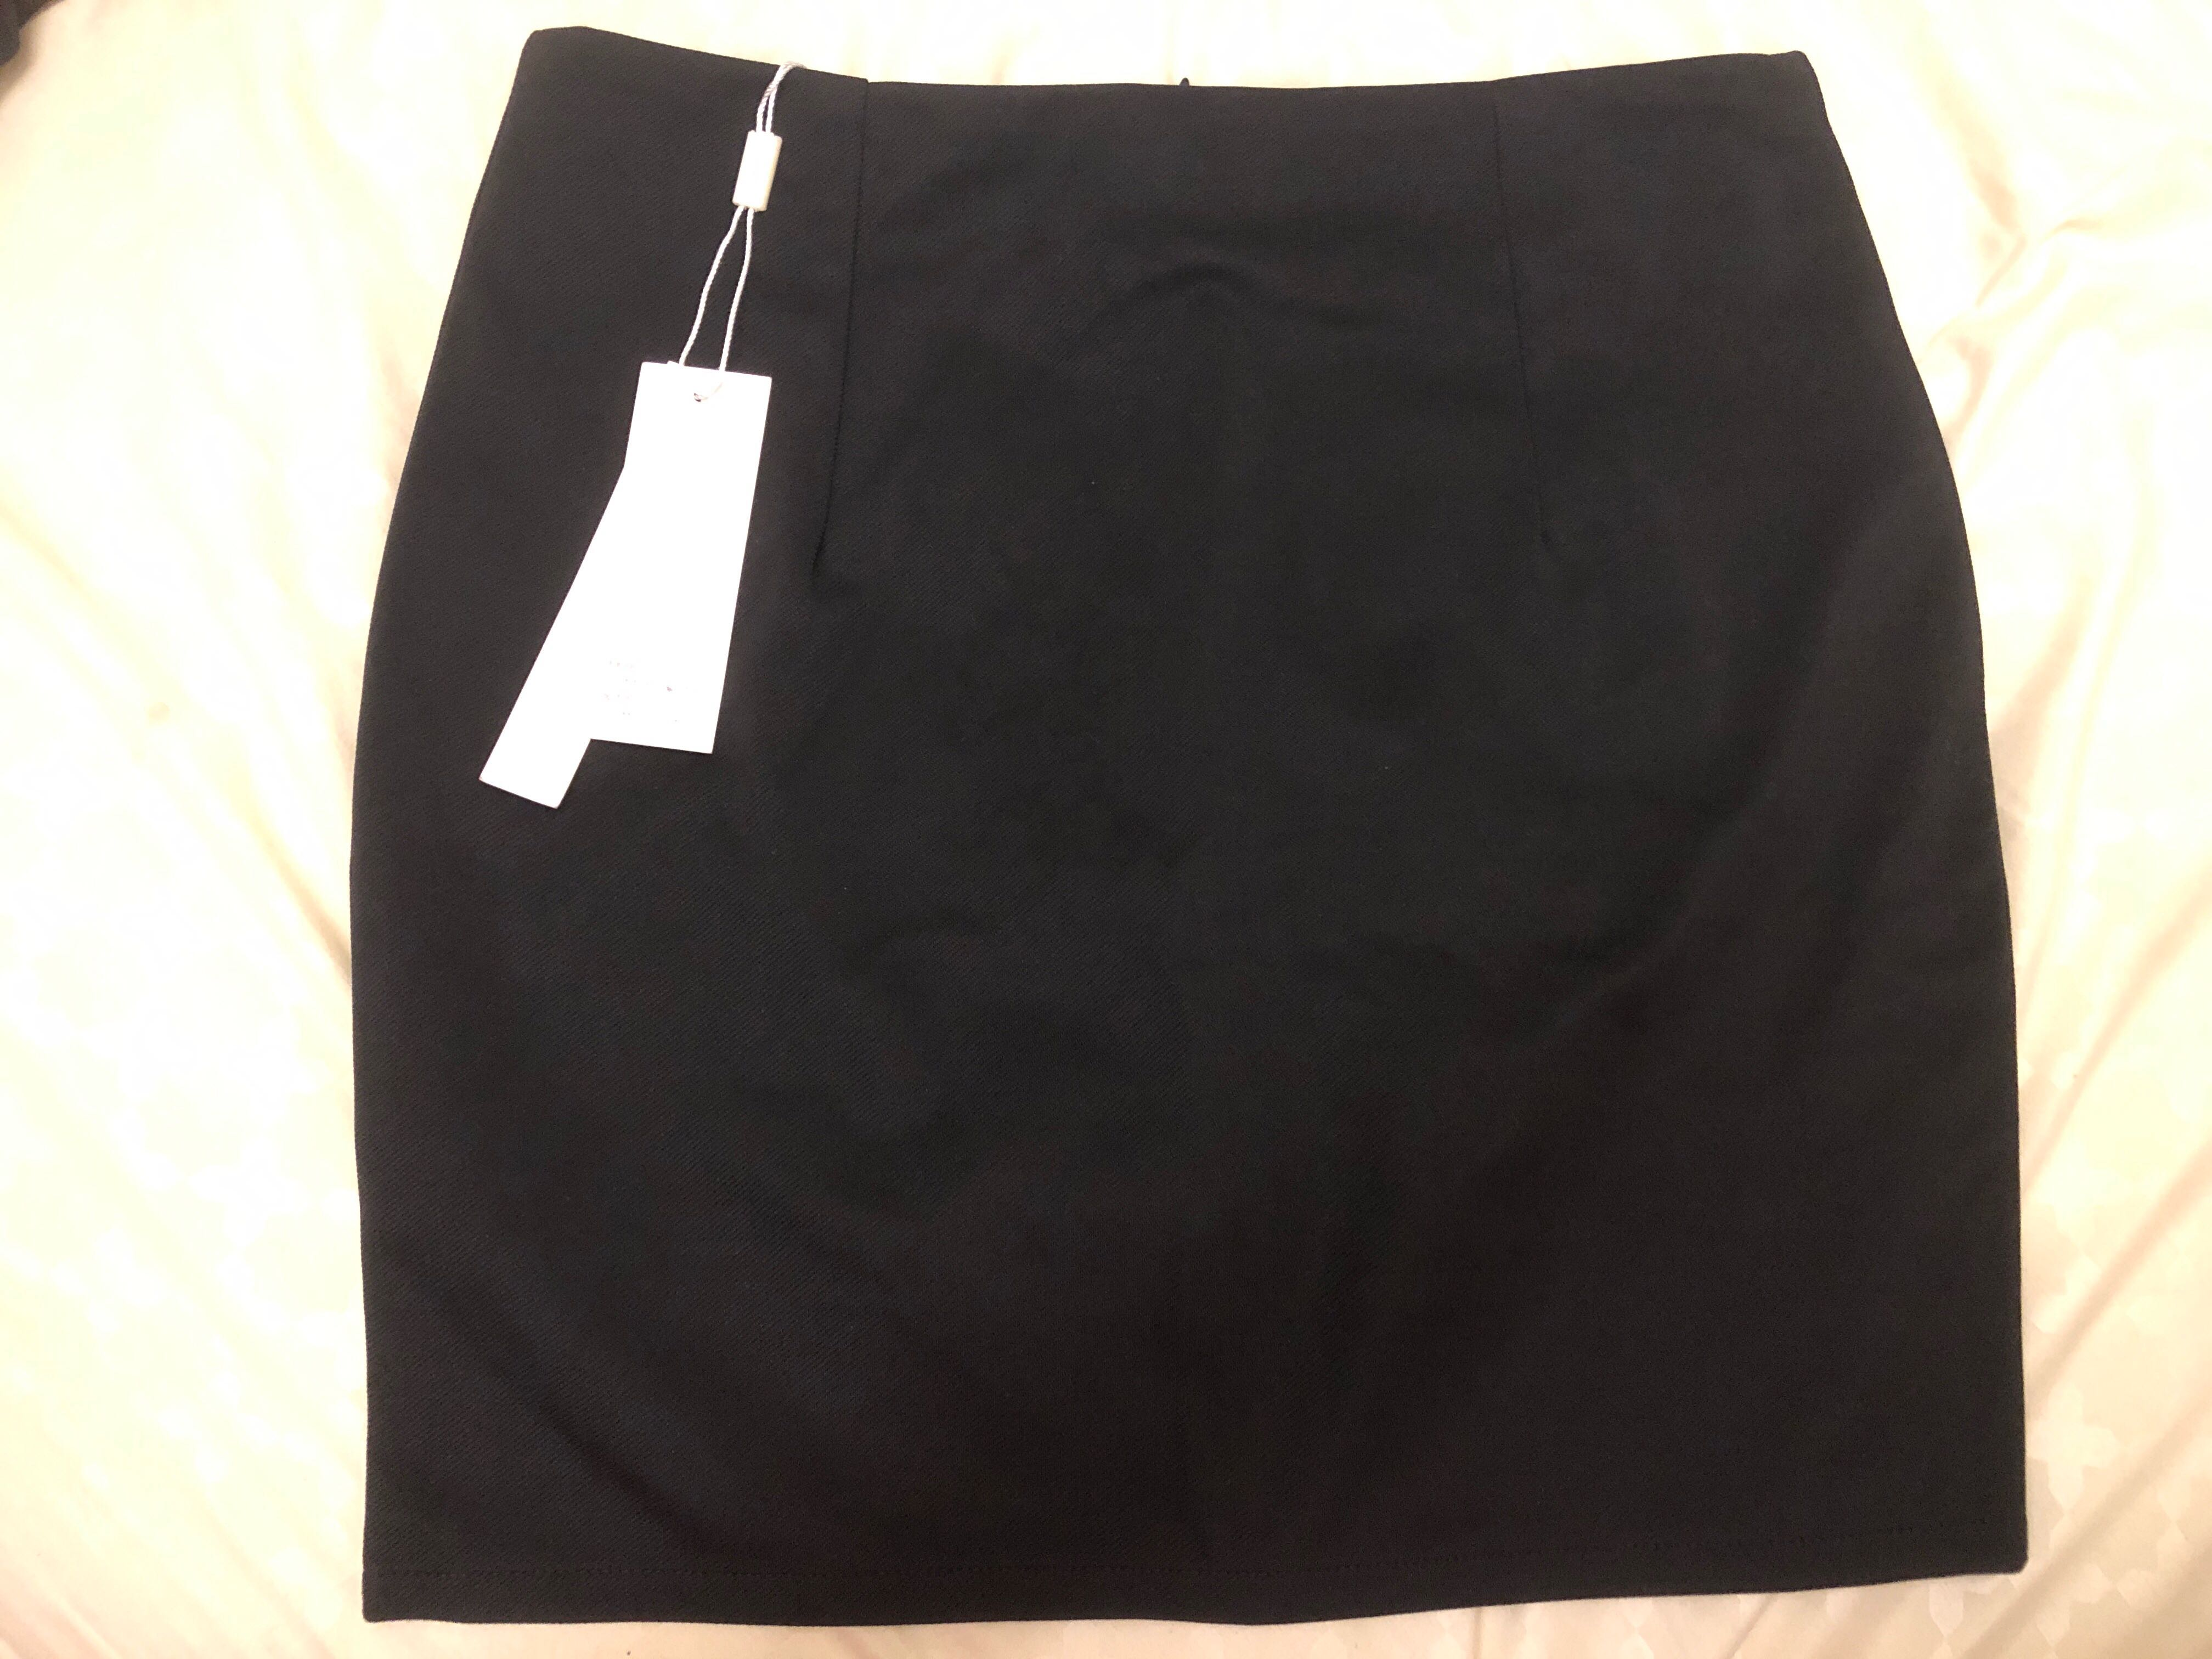 77762b95be OL Black Skirt, Women's Fashion, Clothes, Dresses & Skirts on Carousell